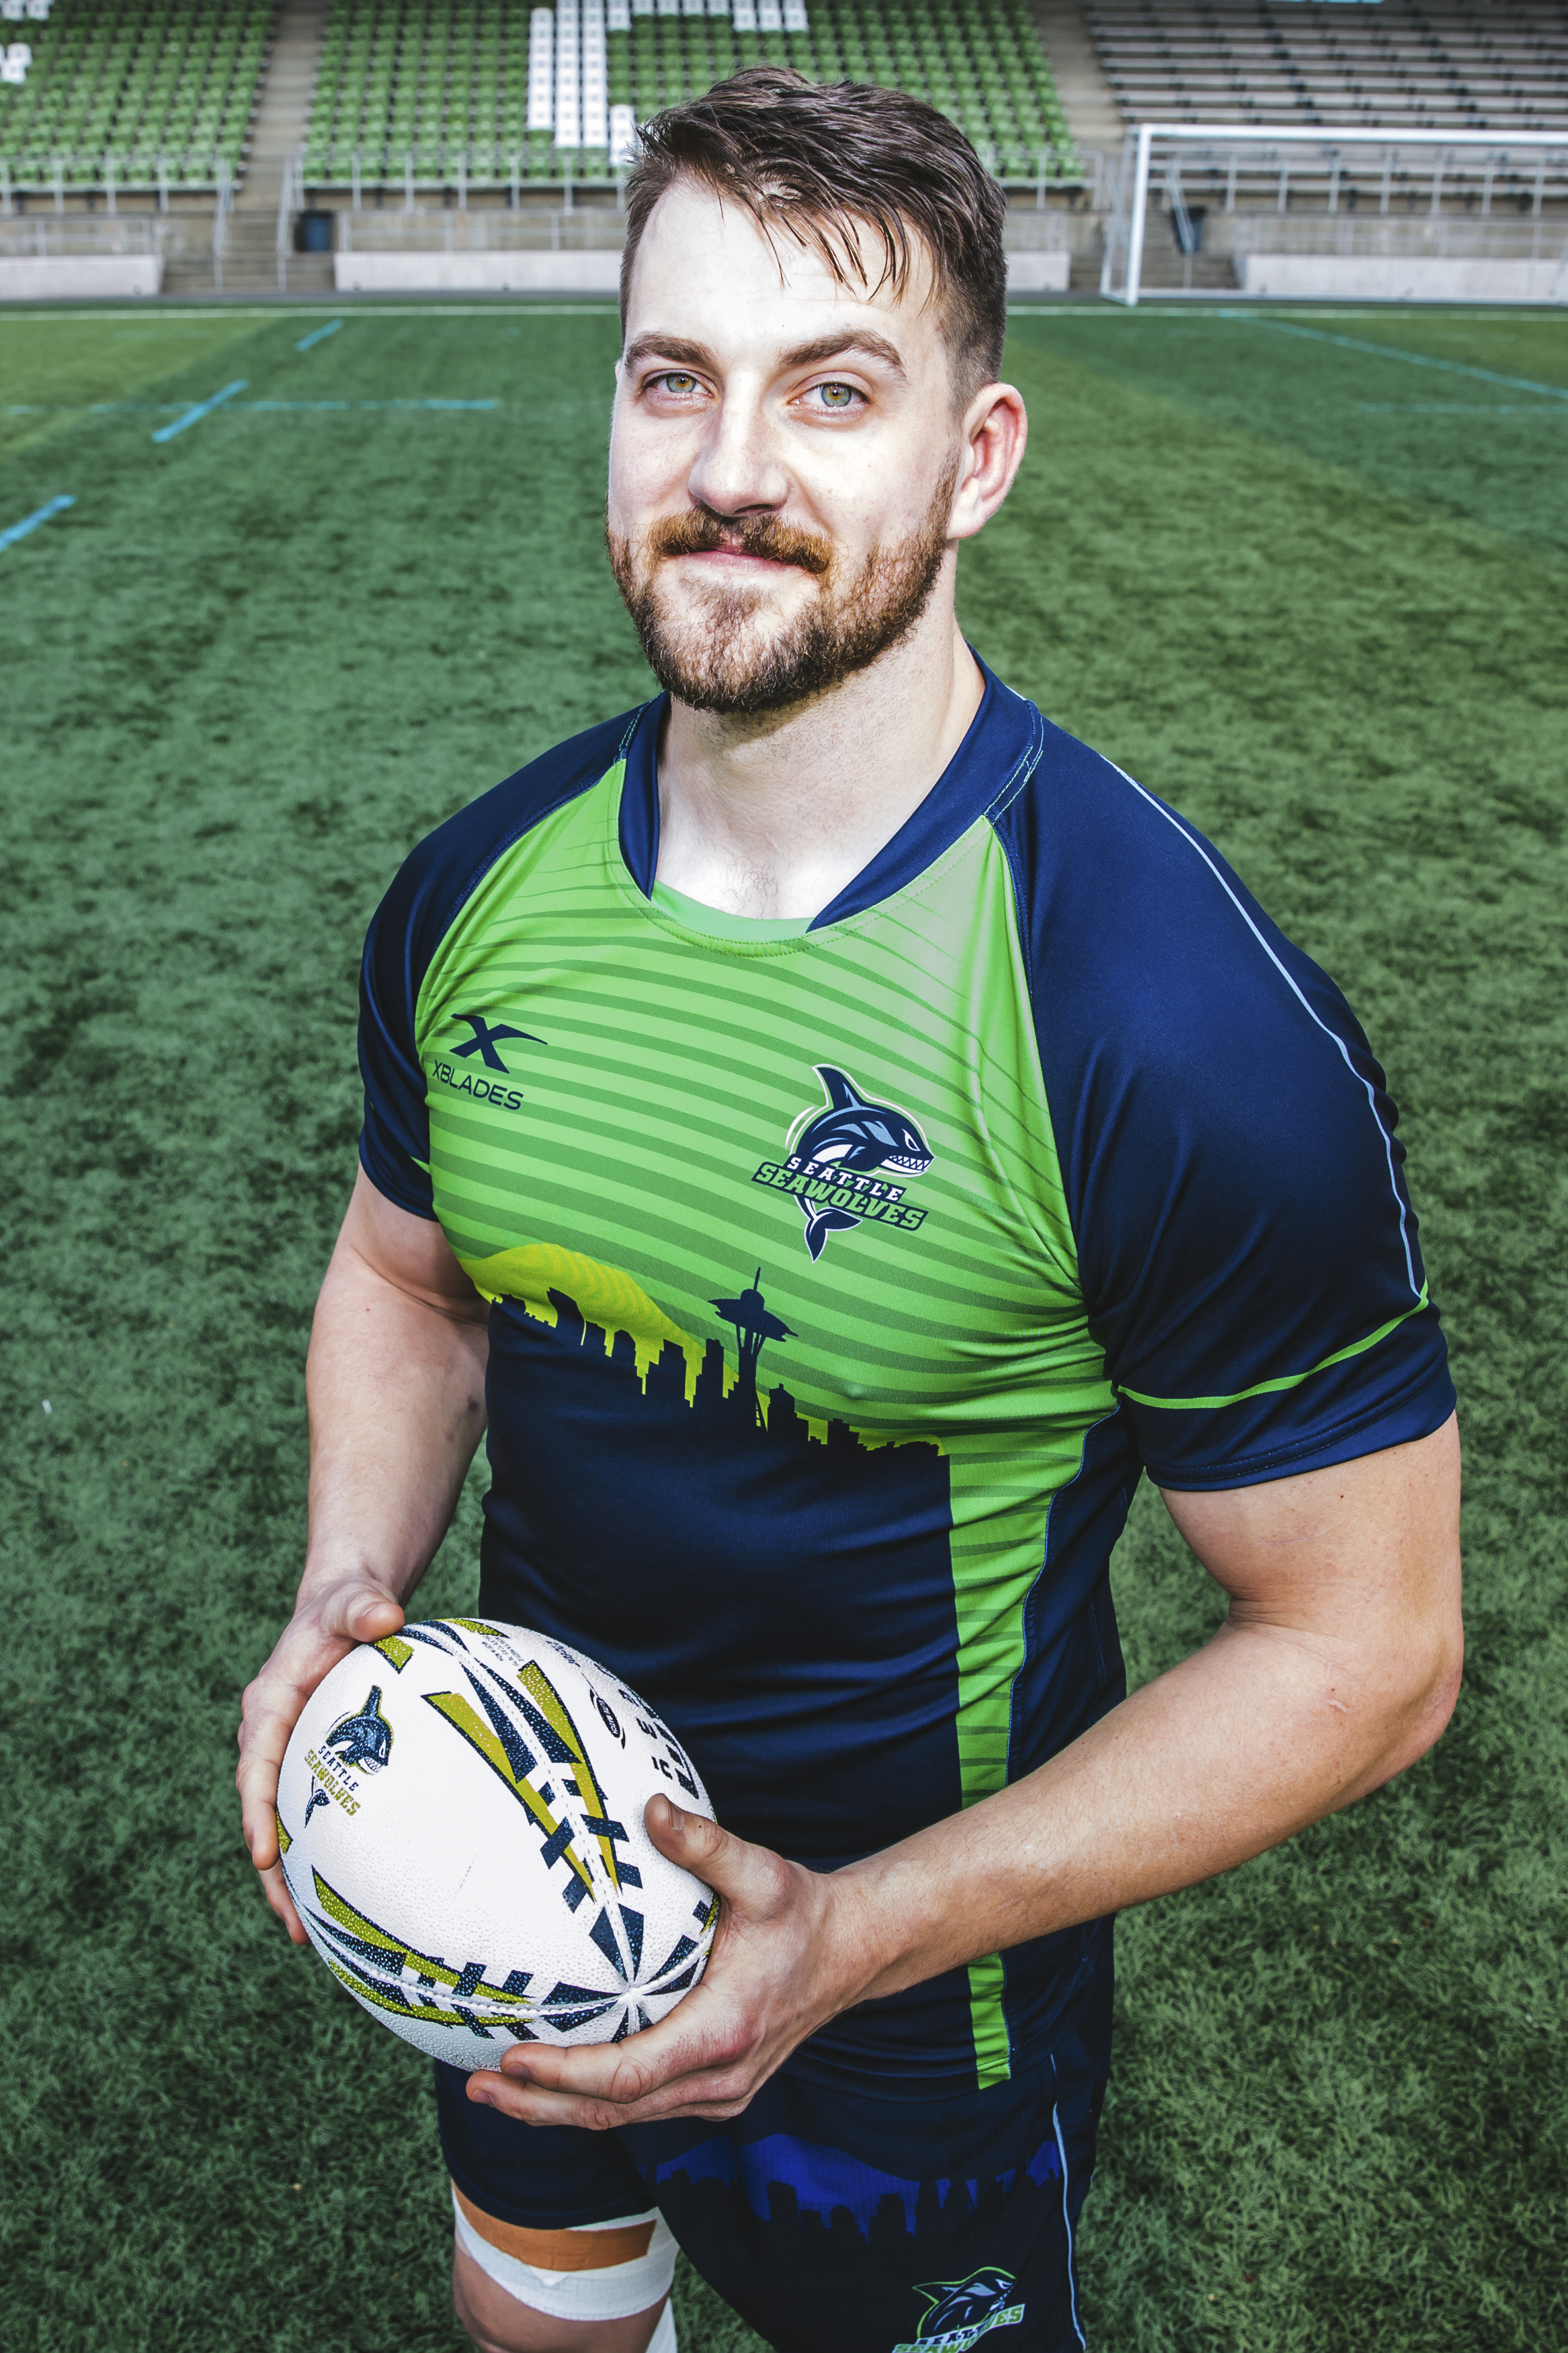 Meet Cam! This handsome man is from London, Ontario. The 29-year-old plays Flanker (although the roster says Lock so maybe he's a Flock? Sorry - bad joke) for the Seattle Seawolves, and his celebrity crush is Gal Gadot. Three cheers for Superwoman. (Image: Sunita Martini / Seattle Refined).{ }